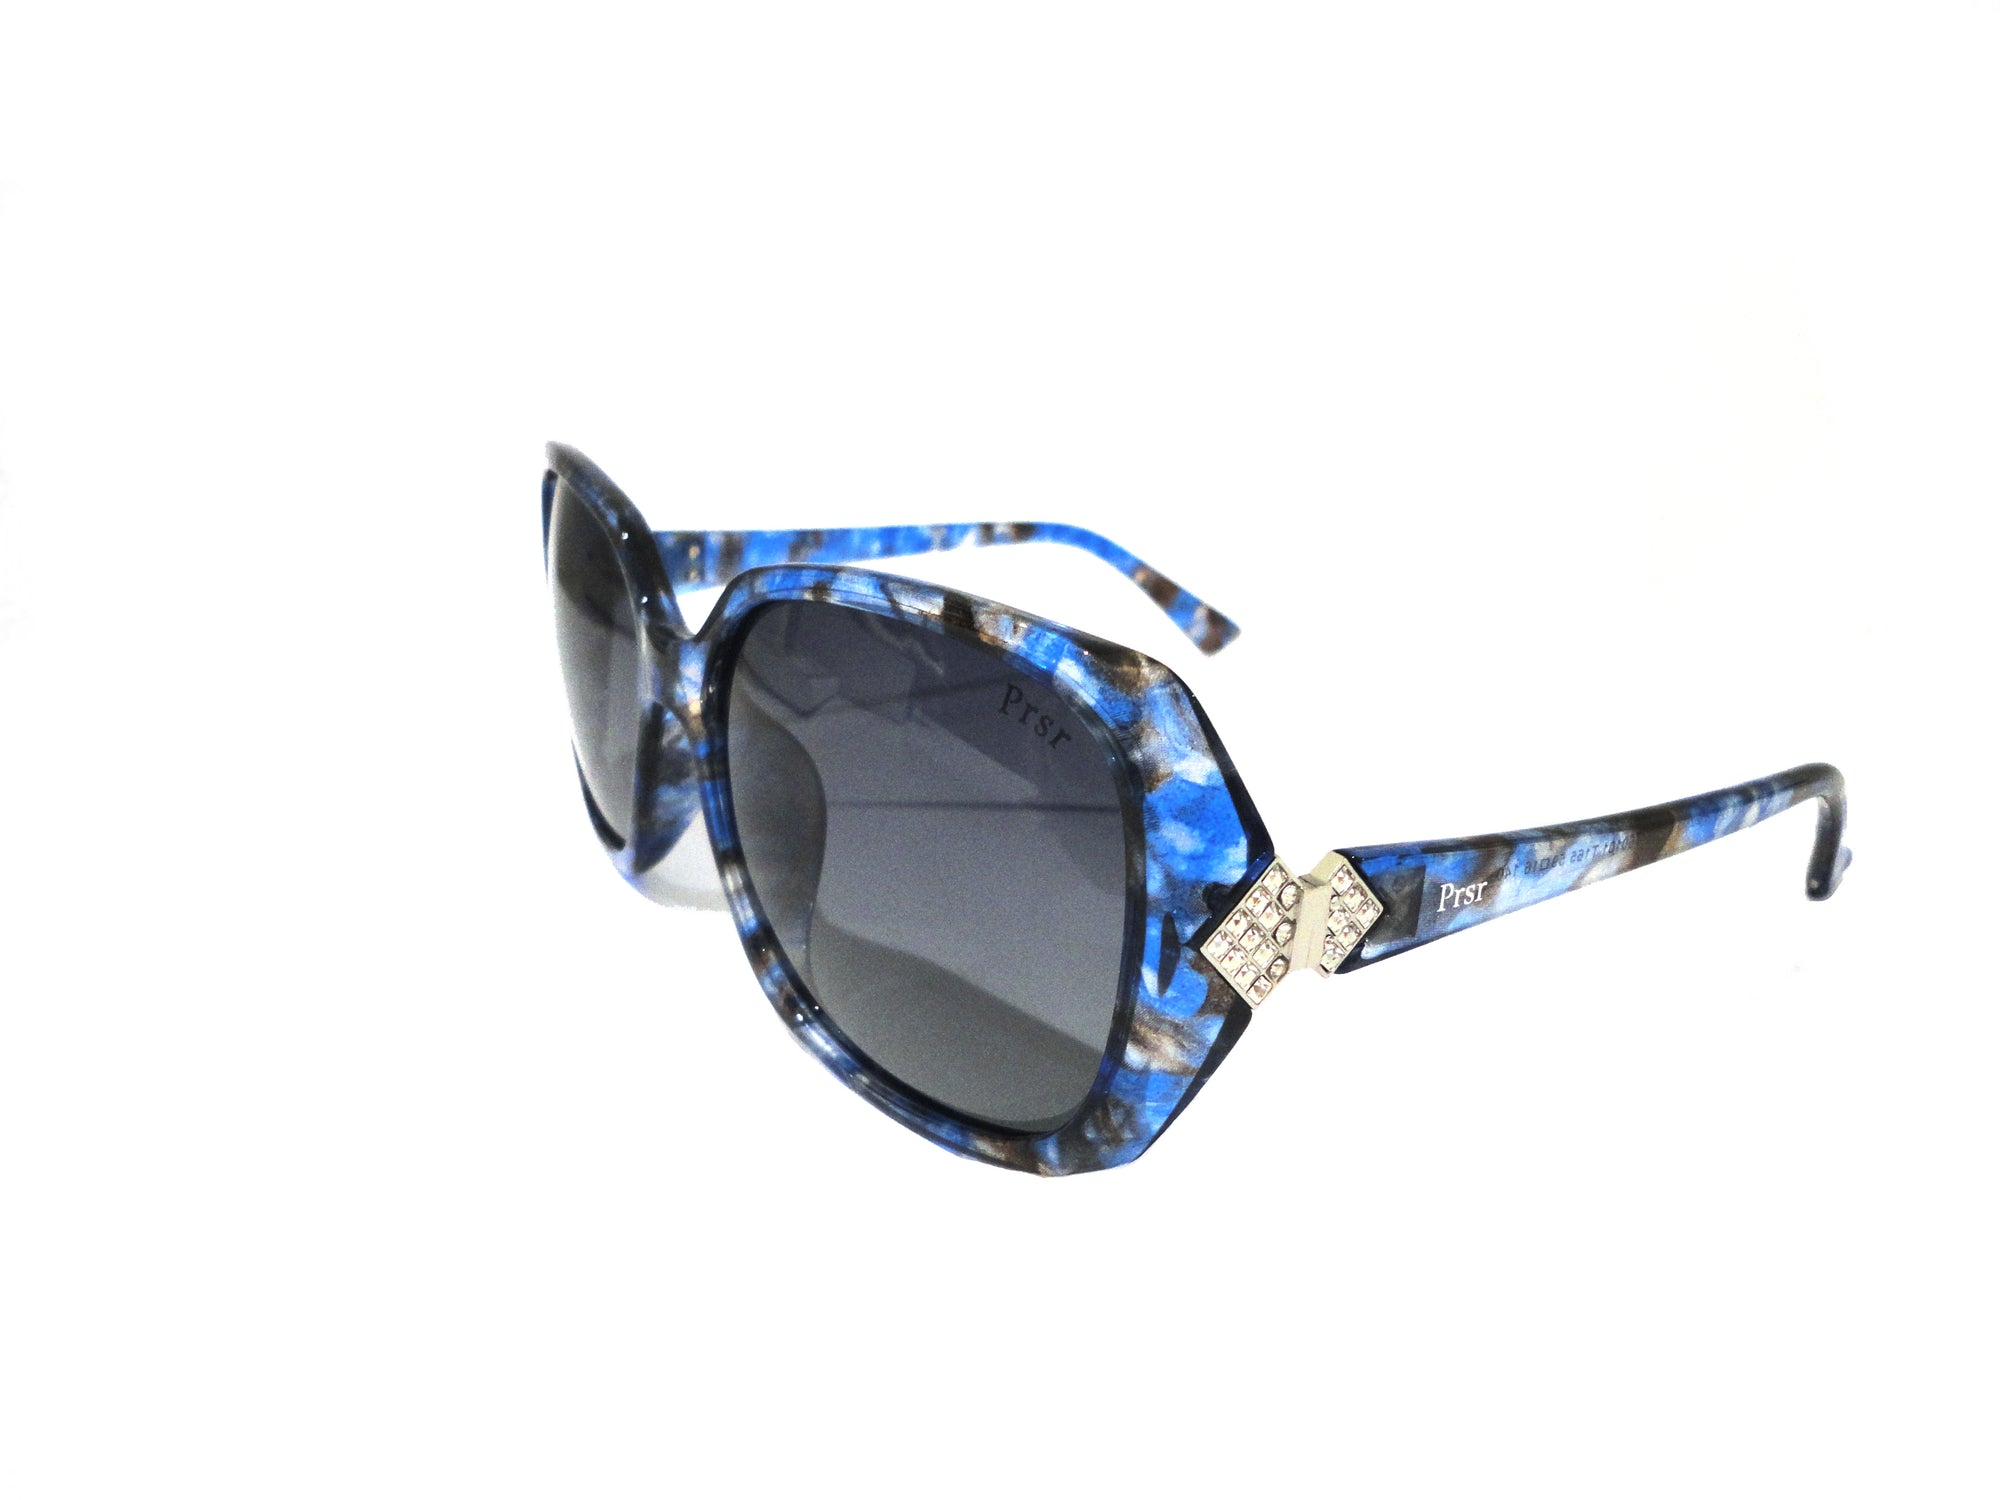 PRSR T60101 - Women Oversize Fashion Sunglasses - Wholesale Sunglasses and glasses